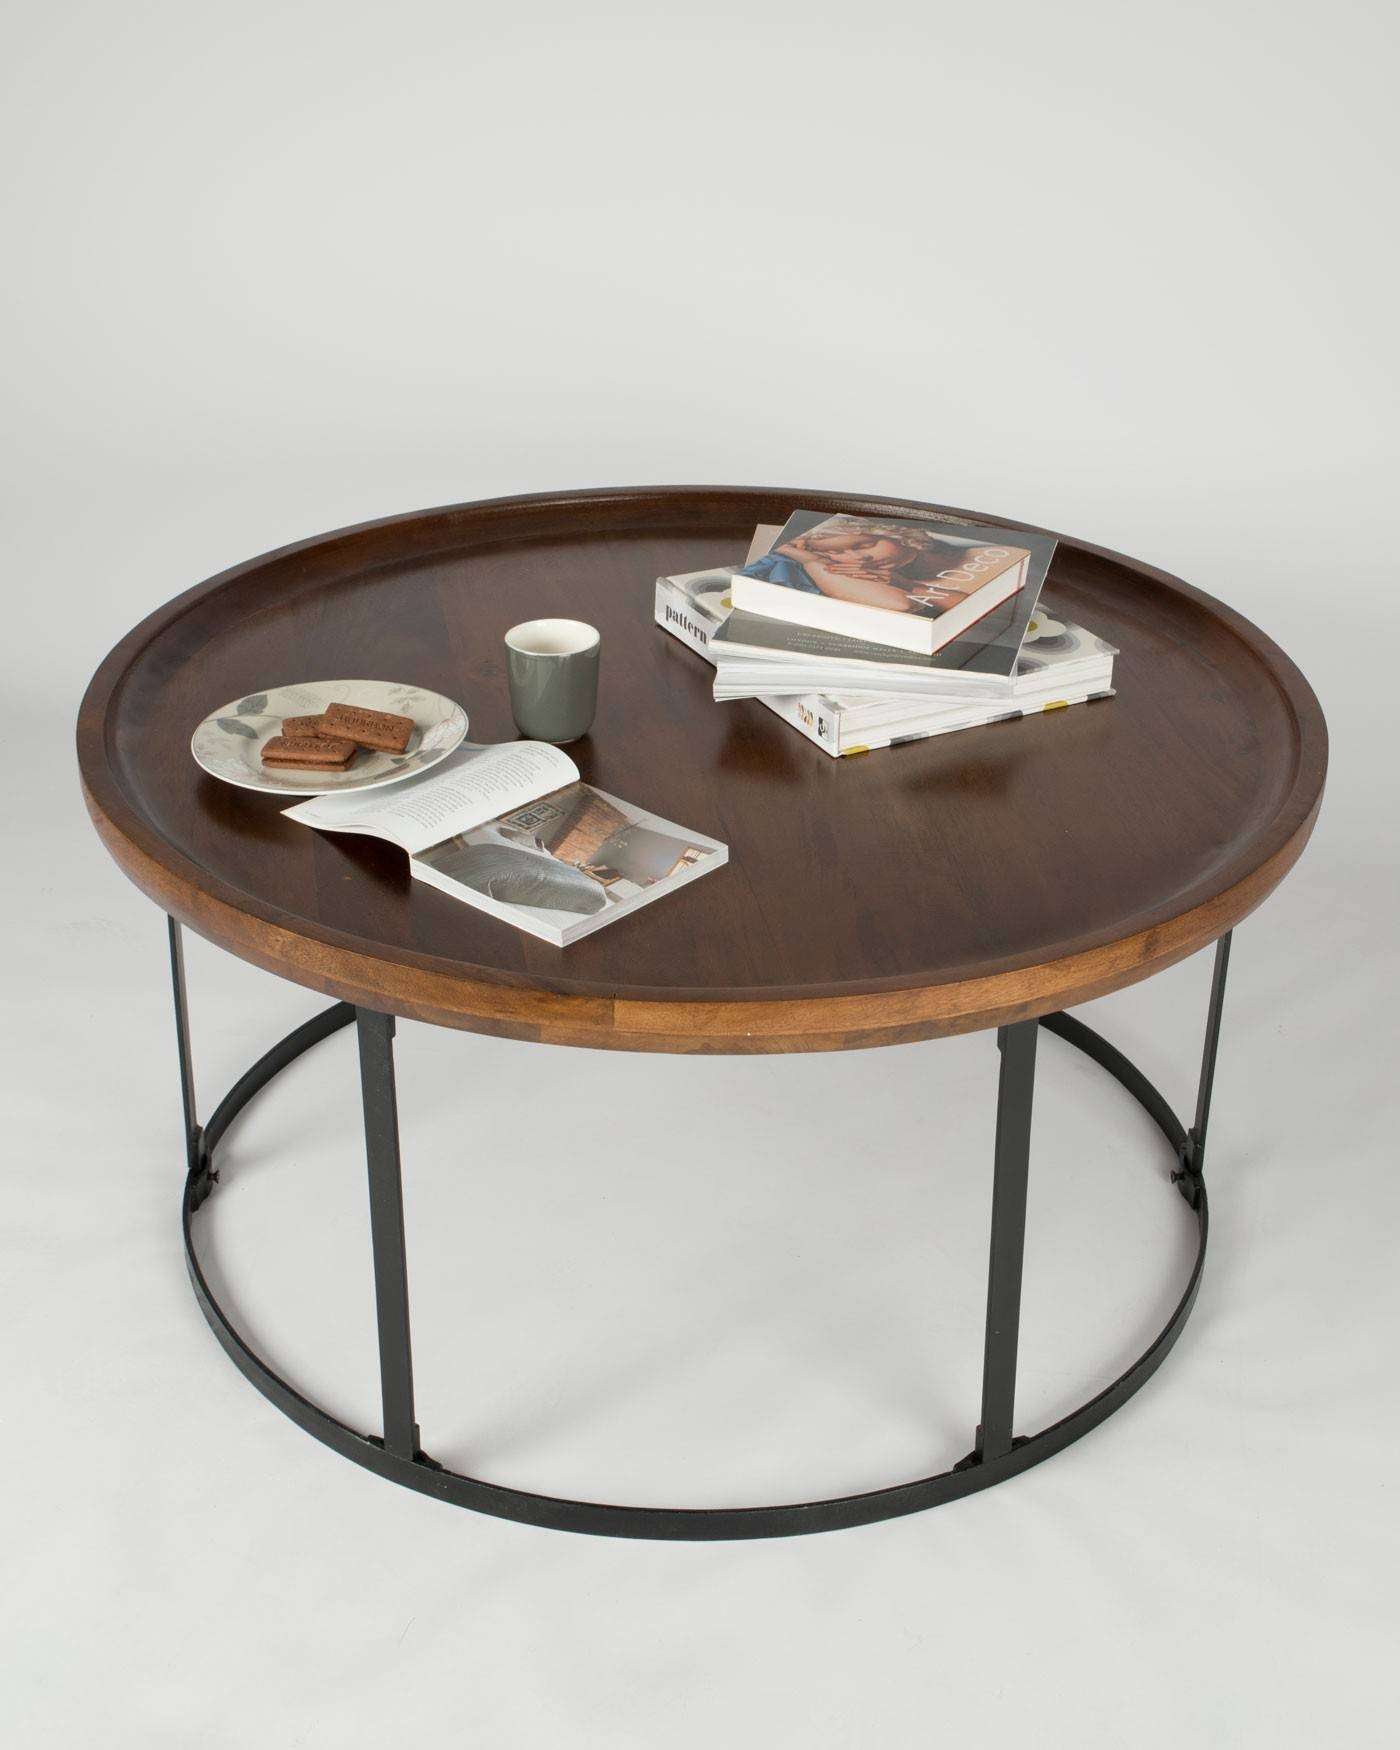 15 Collection of Industrial Round Coffee Tables